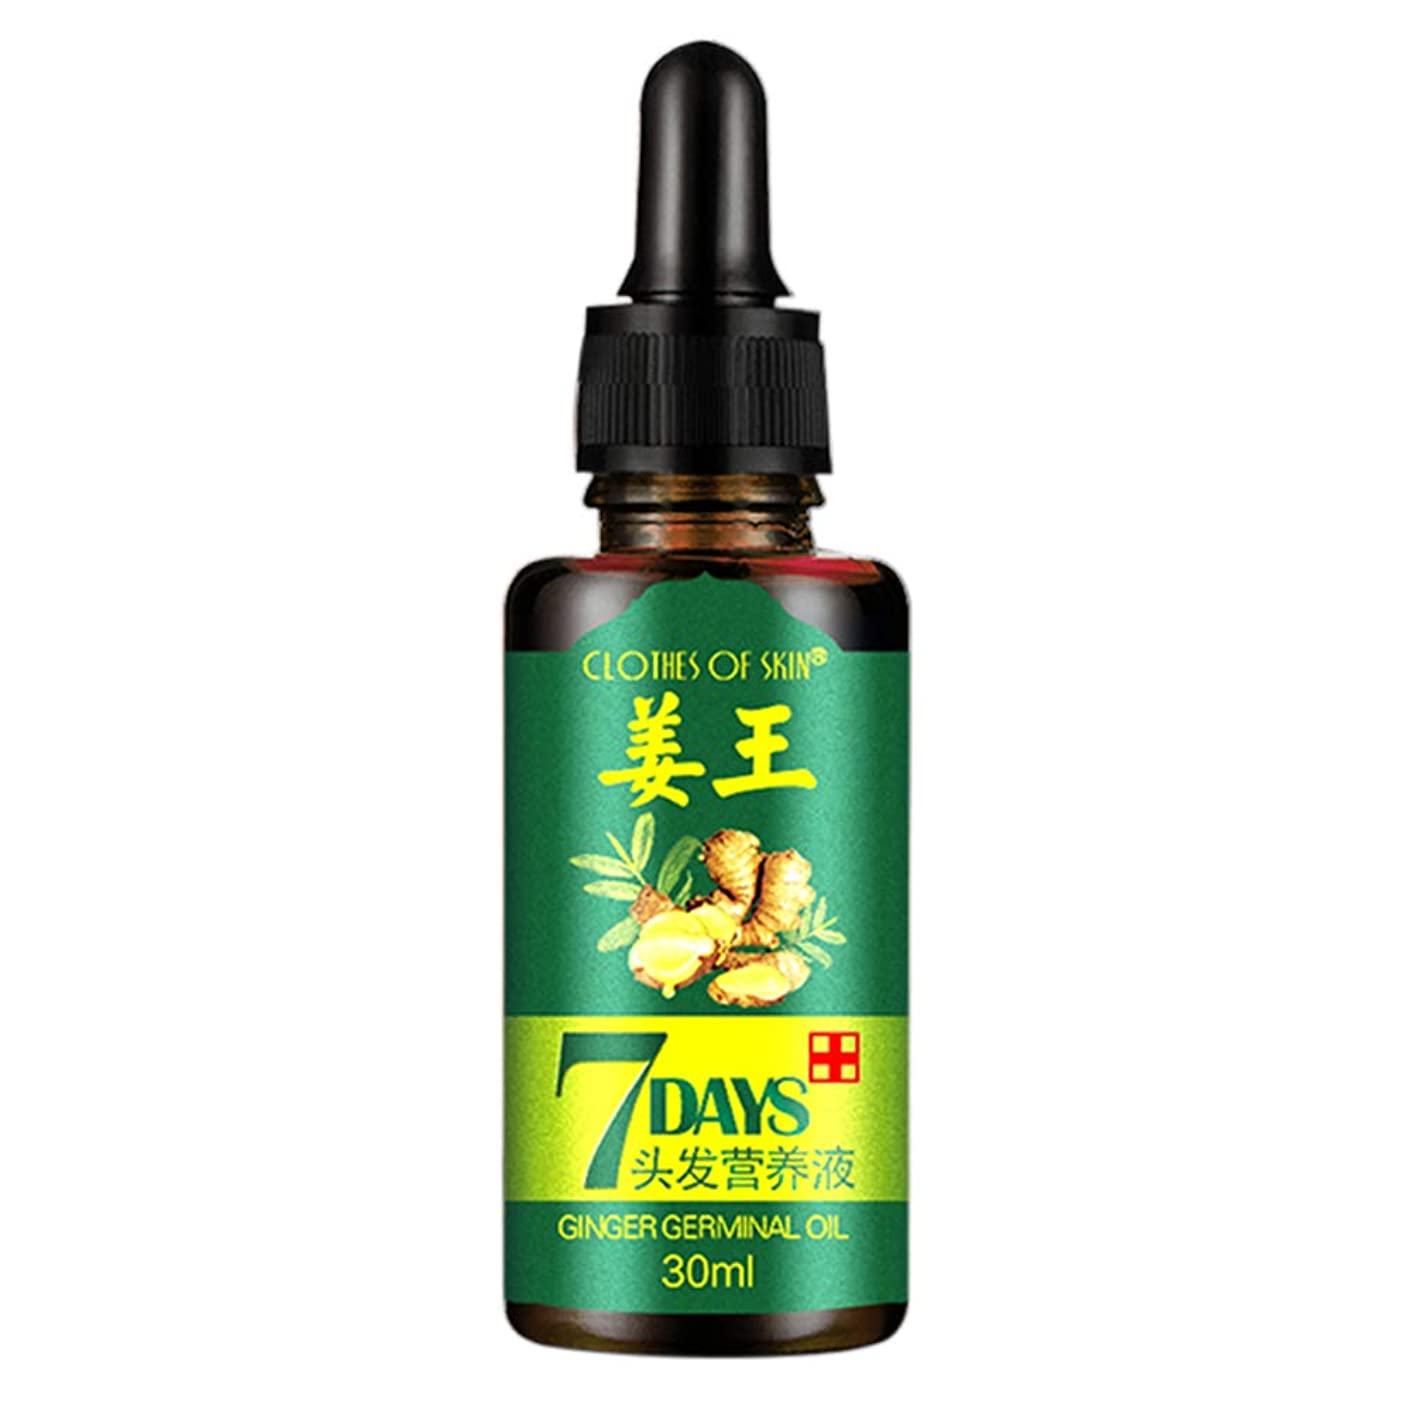 Zhengpin 30ml Hair Set Anti-Hair Loss Chinese Herbal Growth Product Prevent Hair Treatment For Men & Women Damaged Hair Dry Damaged Hair (A)